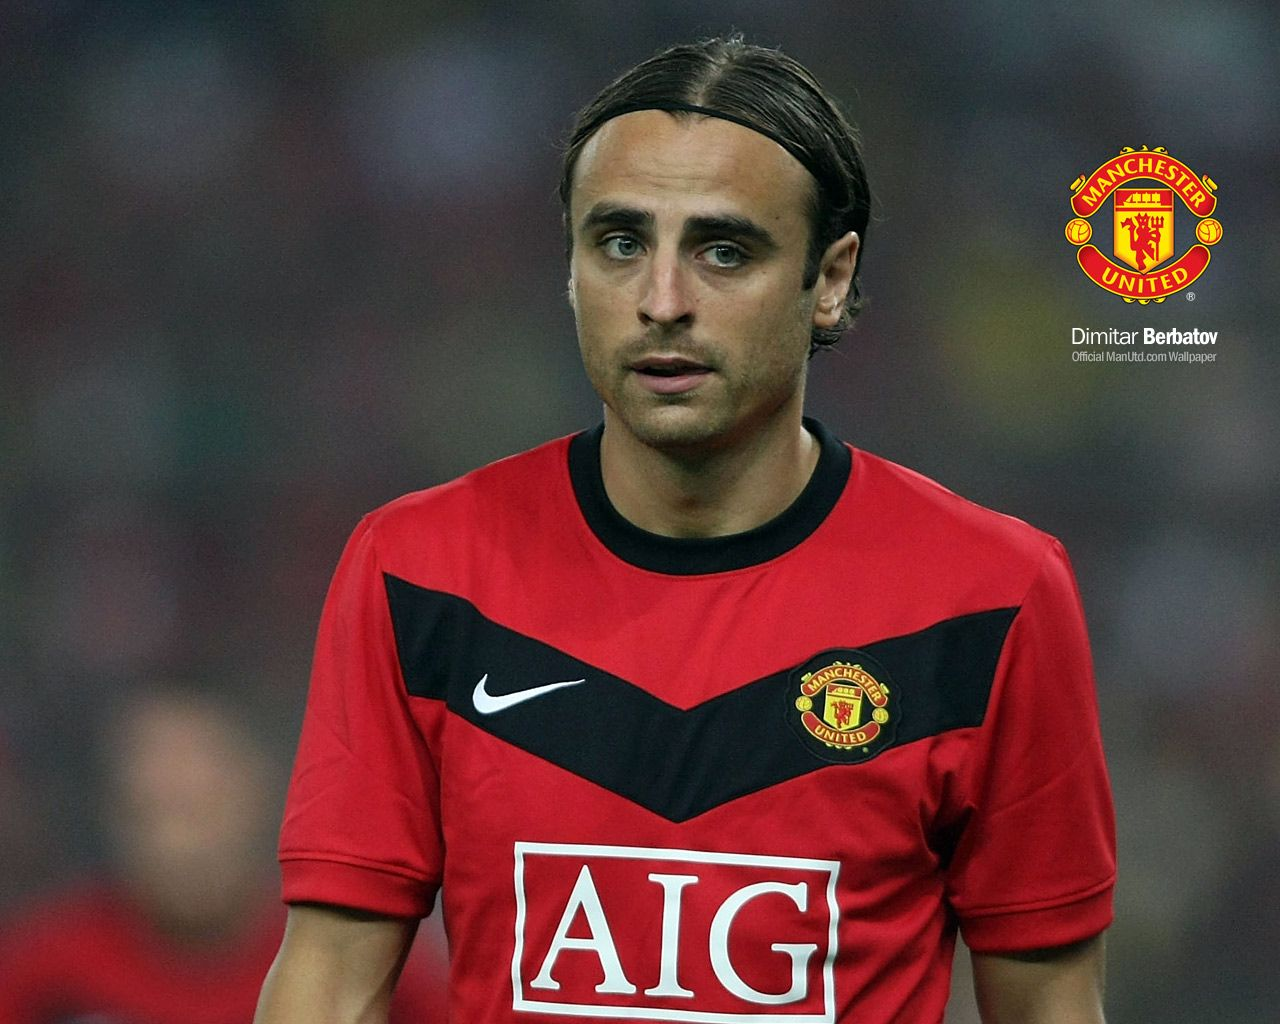 http://2.bp.blogspot.com/-vRcQokZprv0/TZB7PSc84EI/AAAAAAAABlY/oFYLvRPyZRI/s1600/Dimitar+Berbatov+wallpapers+by+cool+sports+players+%252810%2529.jpg